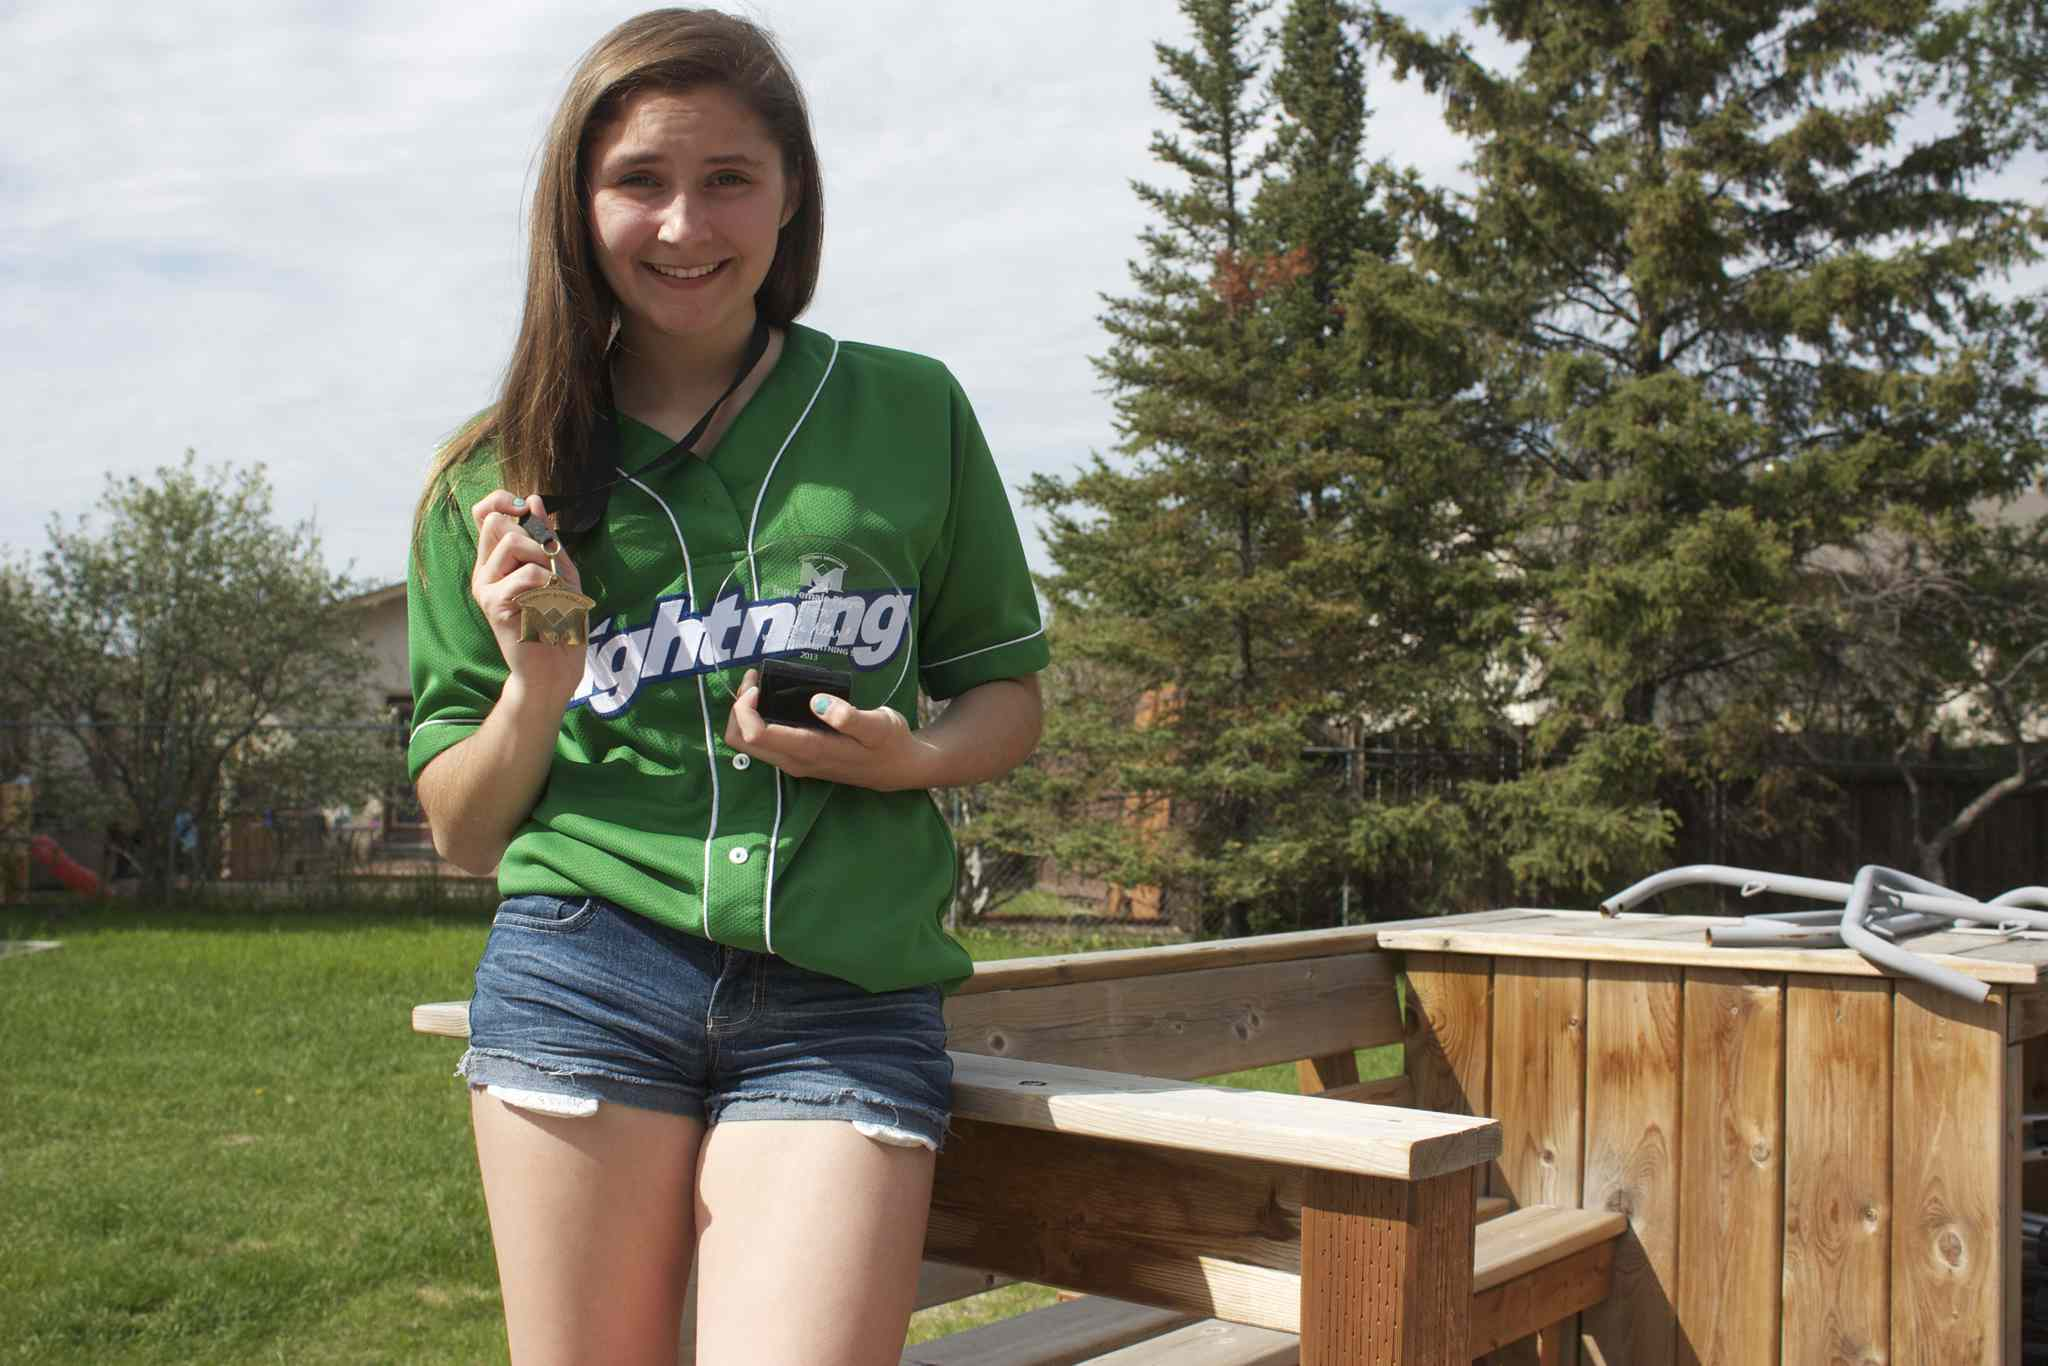 Winnipeg Lightning '99s catcher Kayla Allard shows off her provincial gold medal and MVP award from last season.